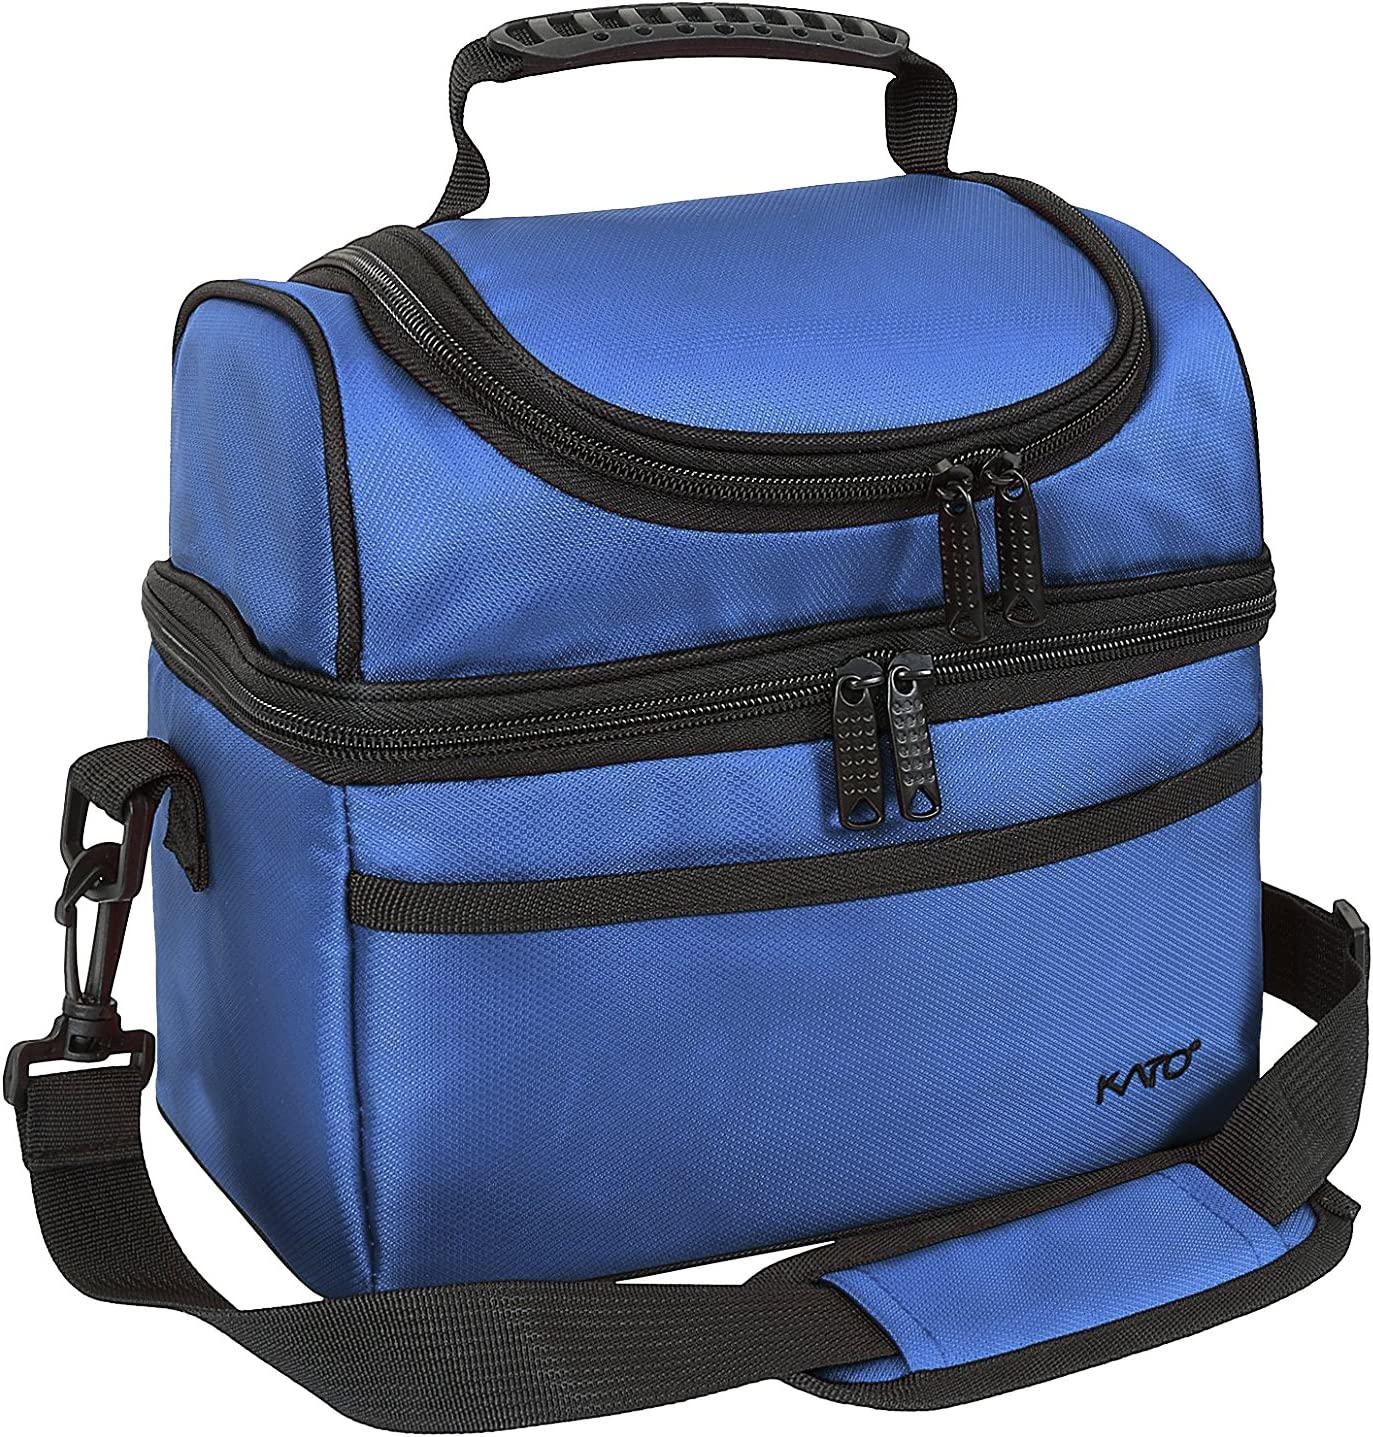 Kato Insulated Lunch Bag, Leakproof Bento Cooler Tote Lunch Box for Men and Women, Dual Compartment with Shoulder Strap, Blue